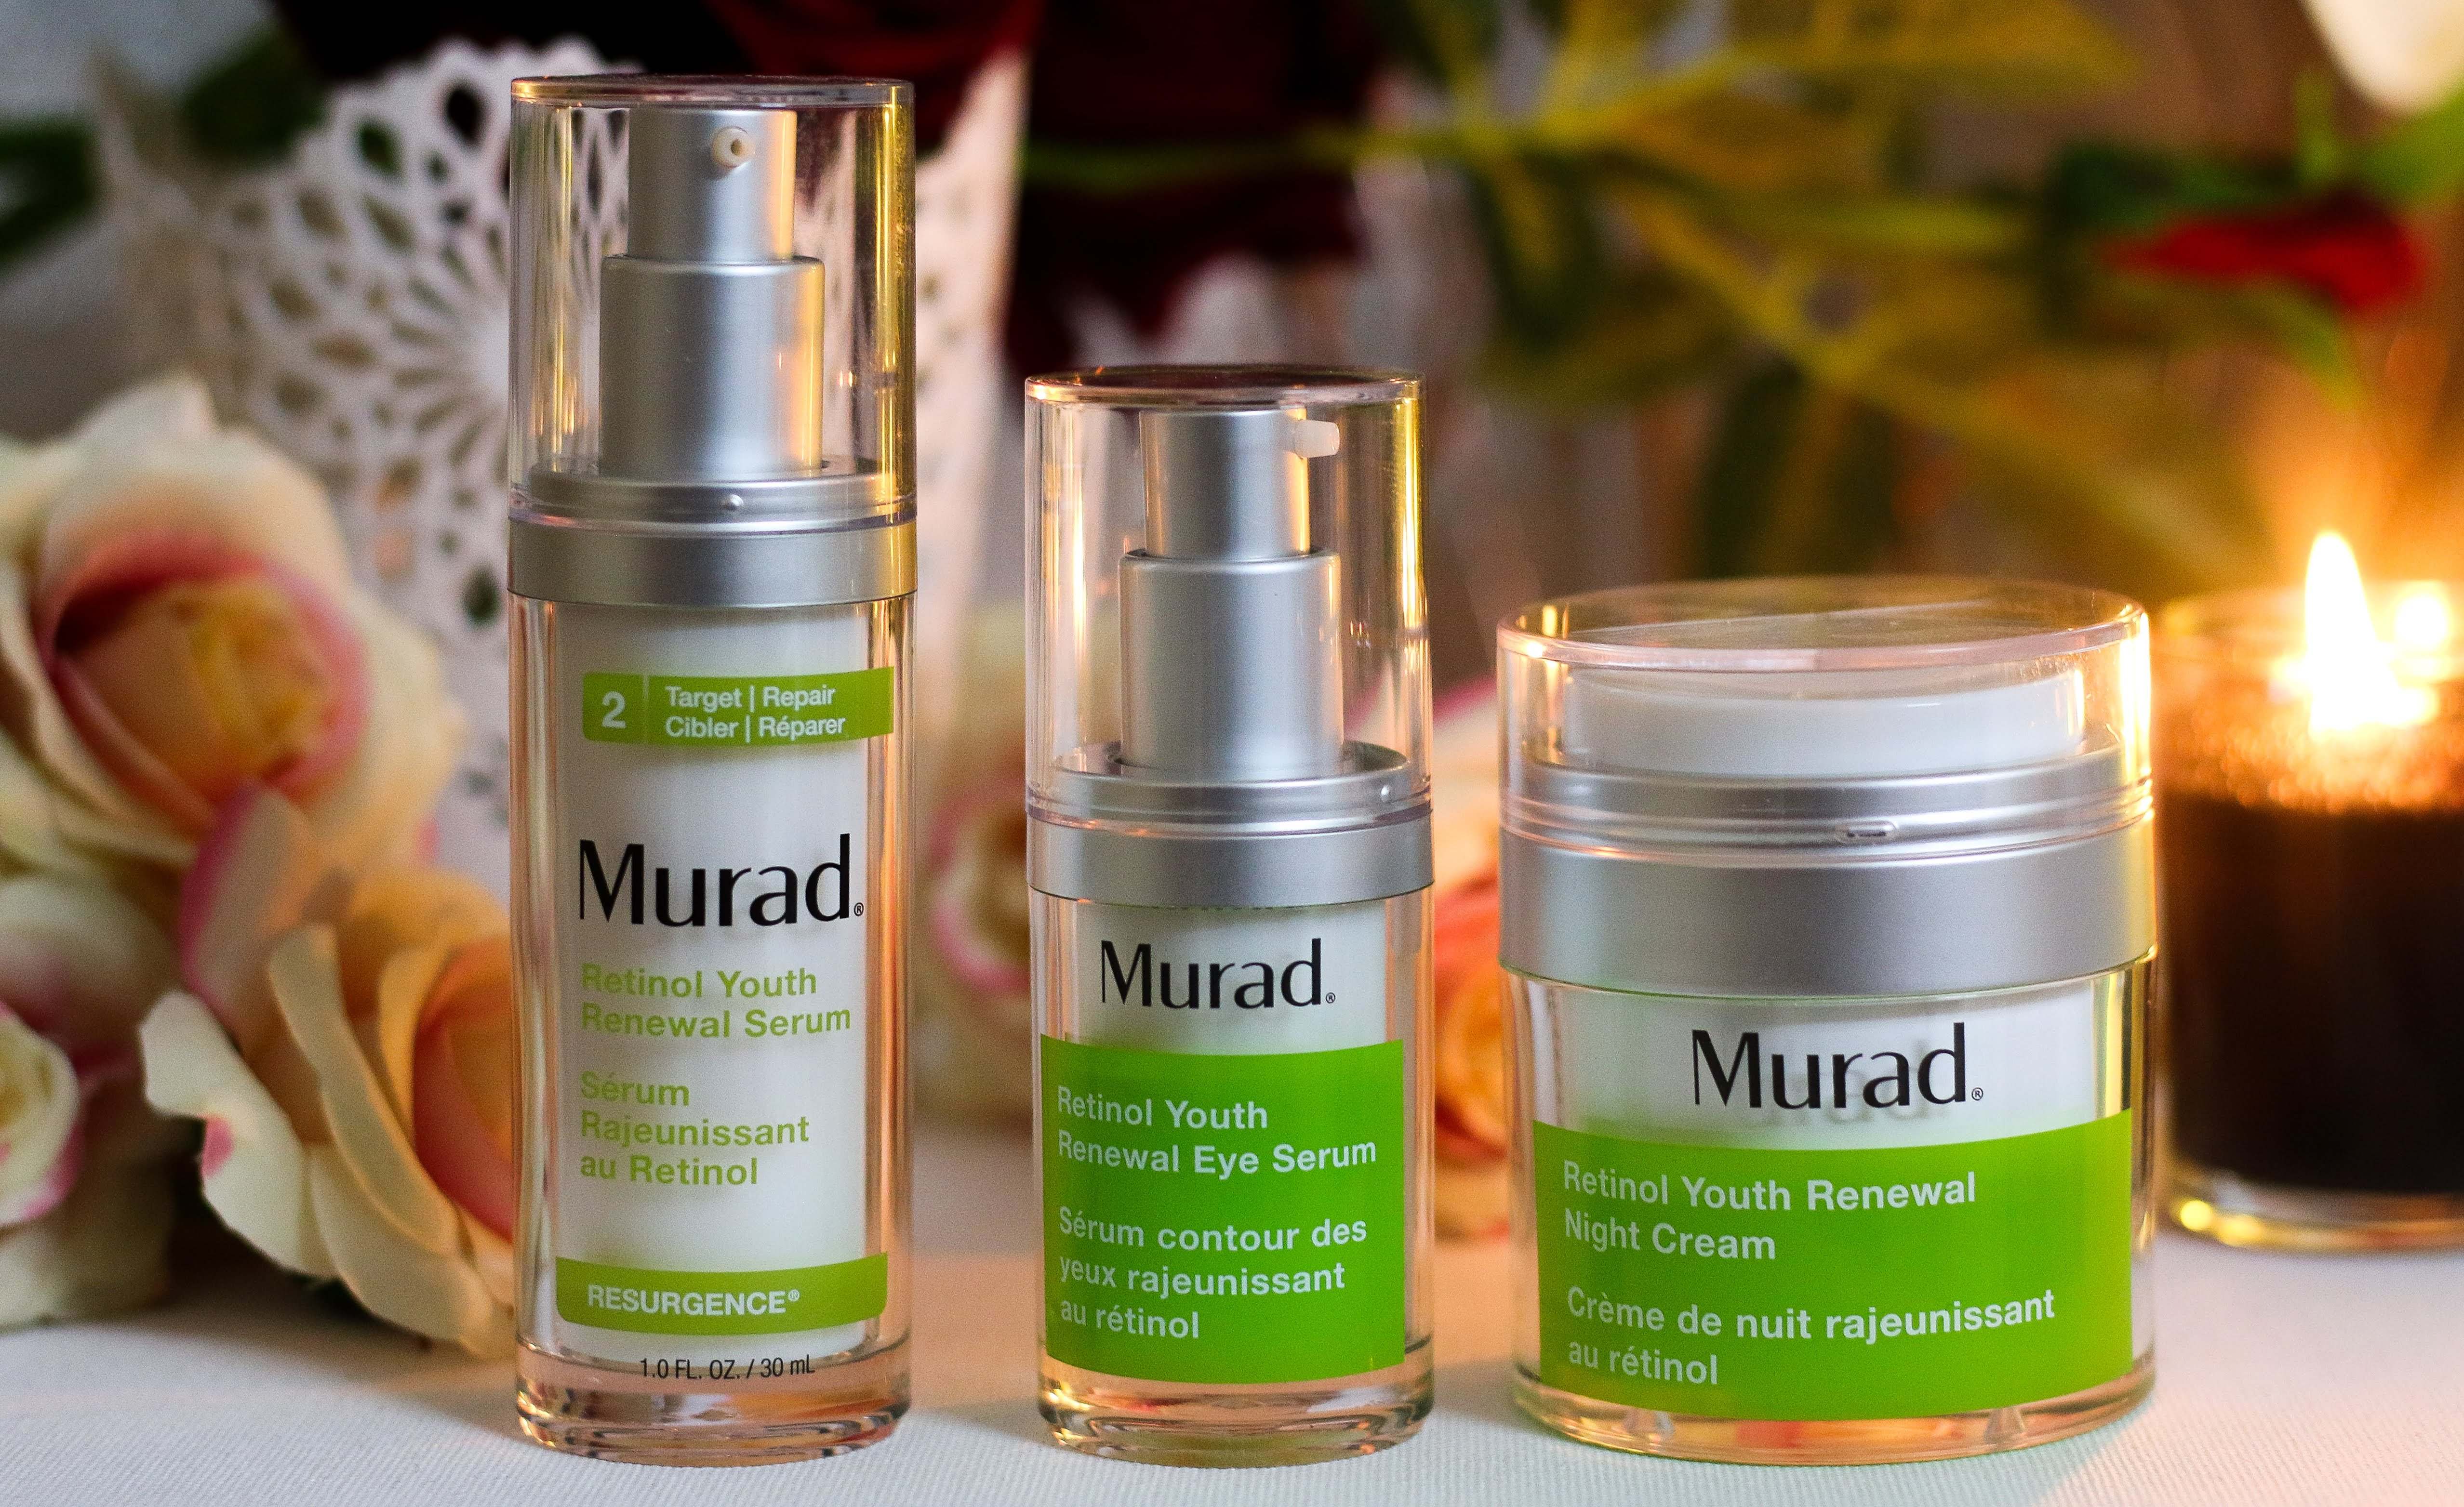 murad retinol youth renewal night cream ingredients, murad retinol youth renewal night cream price, buy murad retinol youth renewal night cream, murad retinol youth renewal night cream review, murad youth renewal retinol night cream review, murad retinol youth renewal night cream,murad retinol youth renewal serum review, murad youth renewal serum review, murad youth renewal serum buy, murad retinol youth renewal serum retinol ingredients,  murad retinol youth renewal serum sephora, murad youth renewal serum, murad youth renewal serum review, murad youth renewal serum online, murad retinol skincare range,  murad retinol youth renewal skincare,  murad retinol youth renewal eye serum review, murad retinol youth renewal eye serum review, murad retinol eye serum,  murad retinol eye serum ingredients, murad retinol youth eye serum, murad retinol youth renewal eye serum sephora murad retinol youth renewal skincare, murad retinoleye serum review, murad retinol youth renewal eye serum ingredients